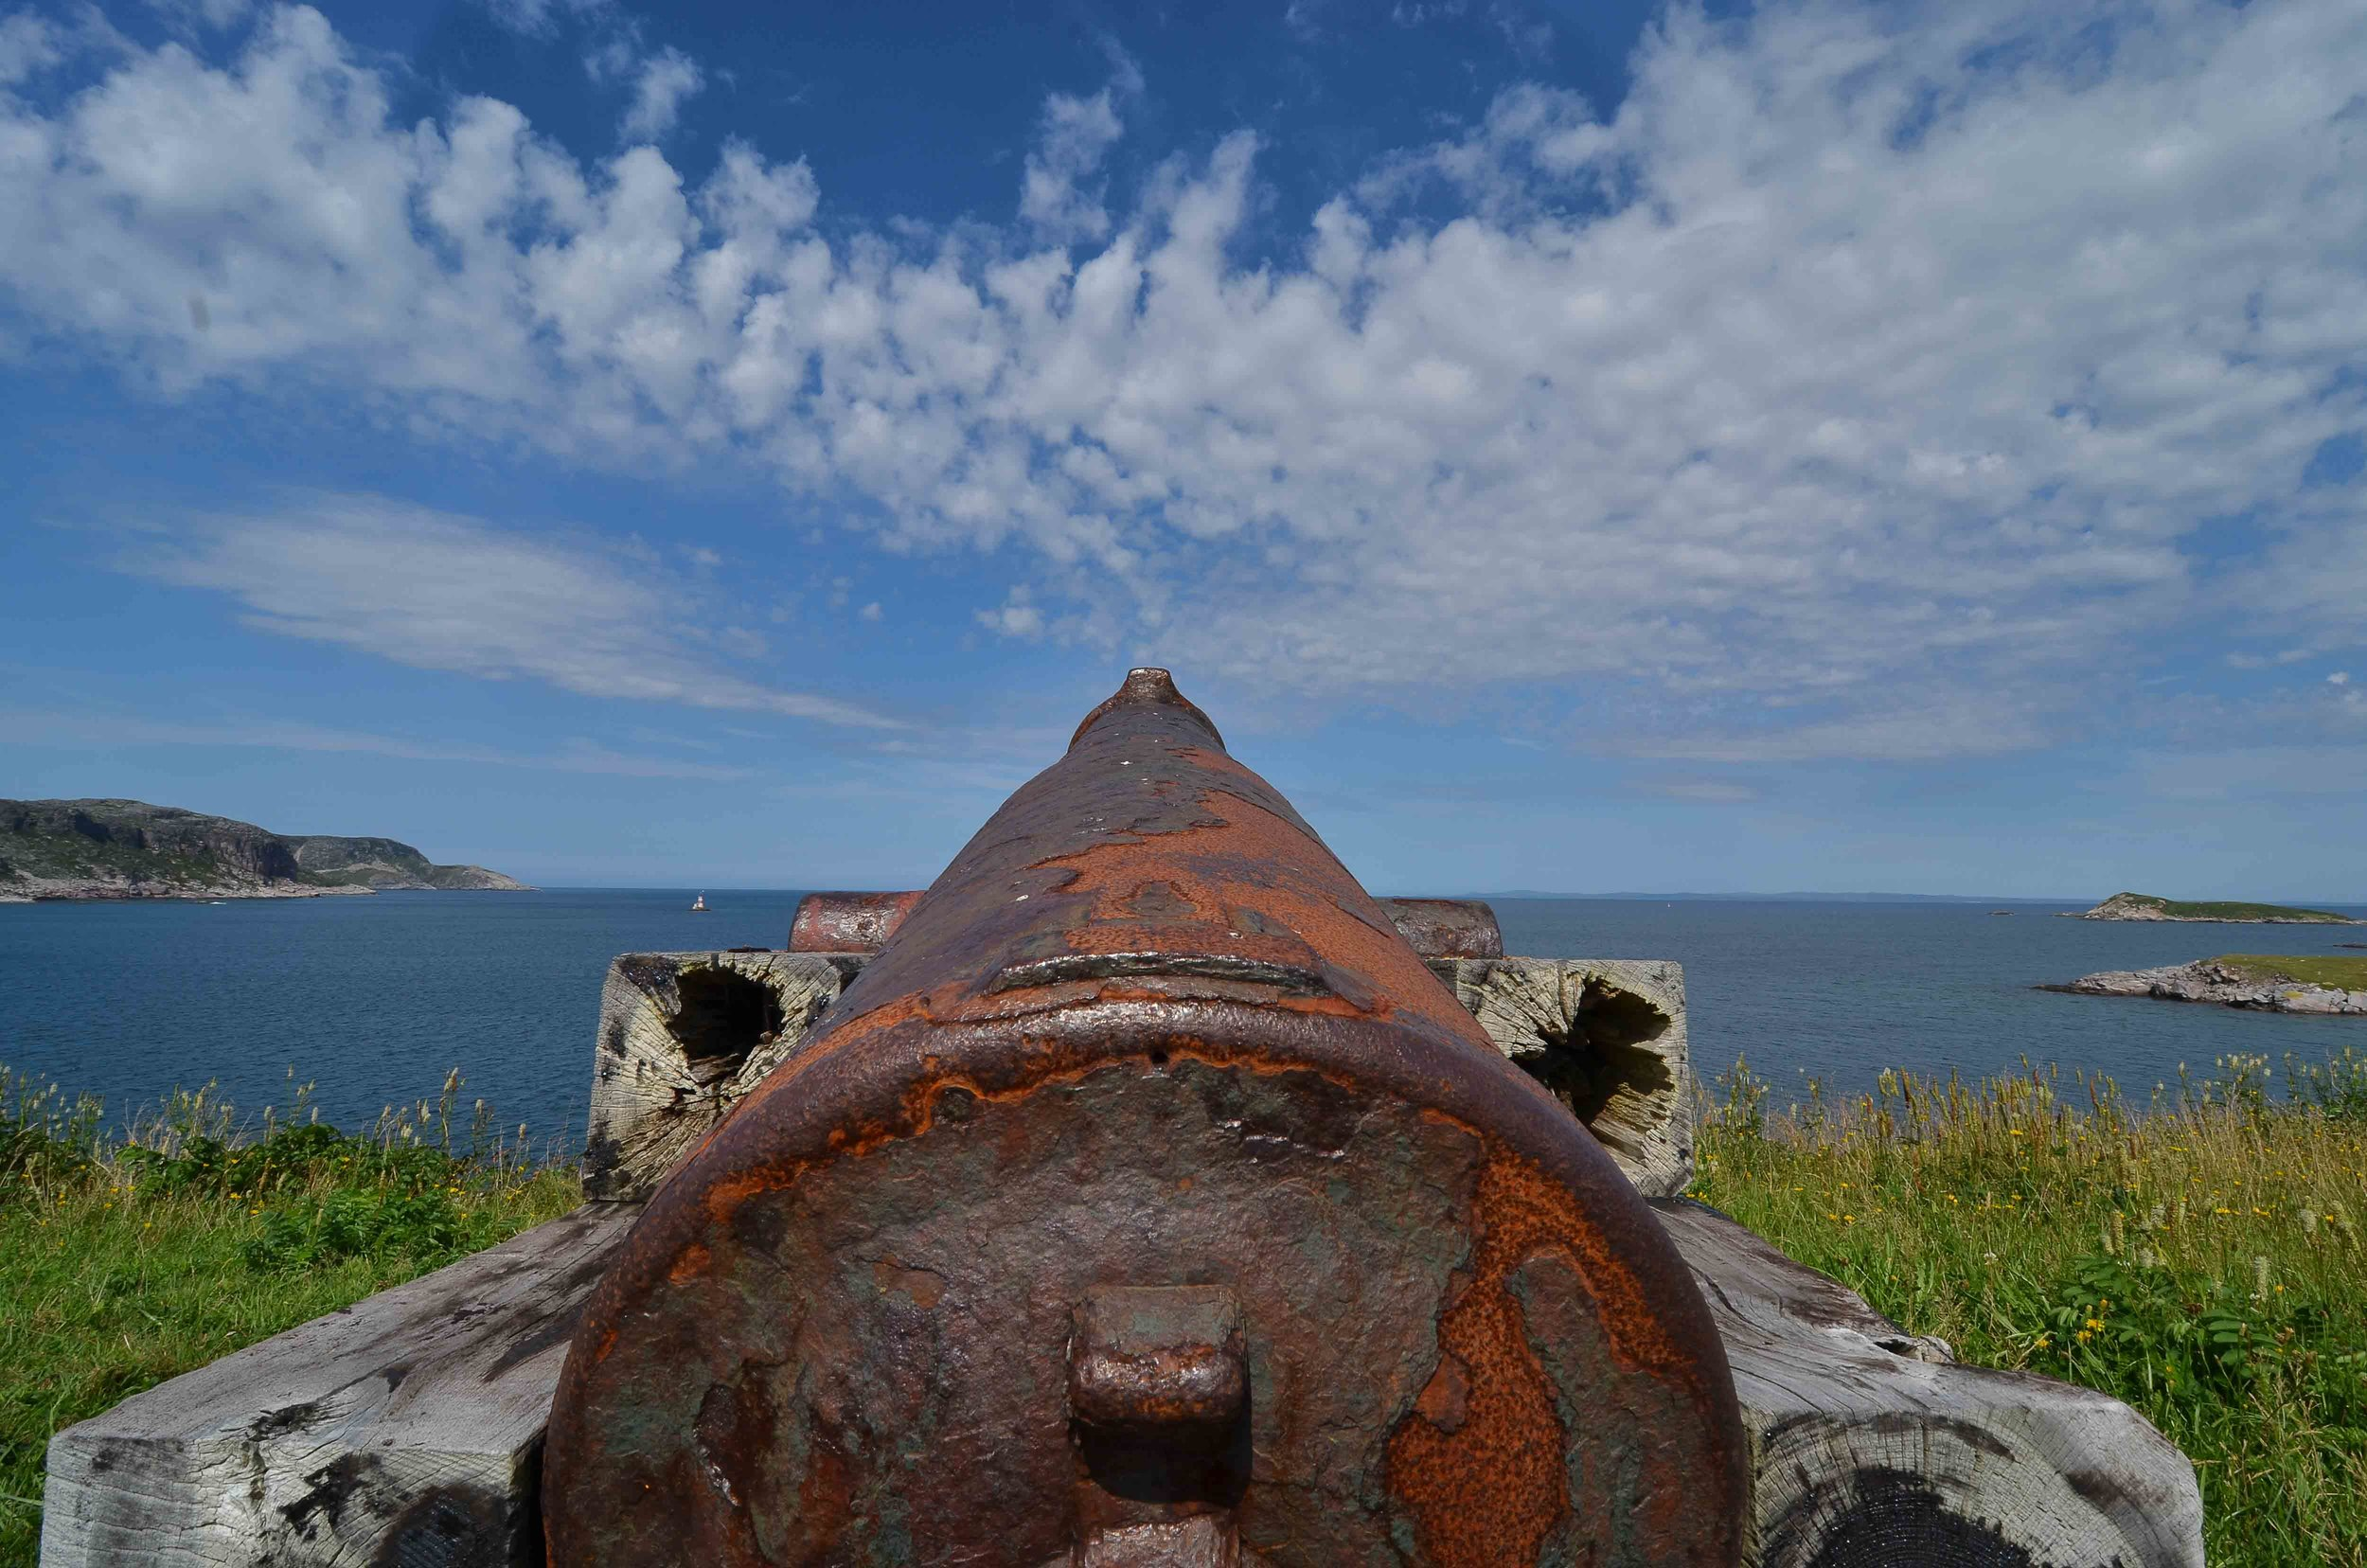 Cannon protecting the harbor entrance to St Pierre. The fort was at the north end of the outlying island of restored fisherman's homes.